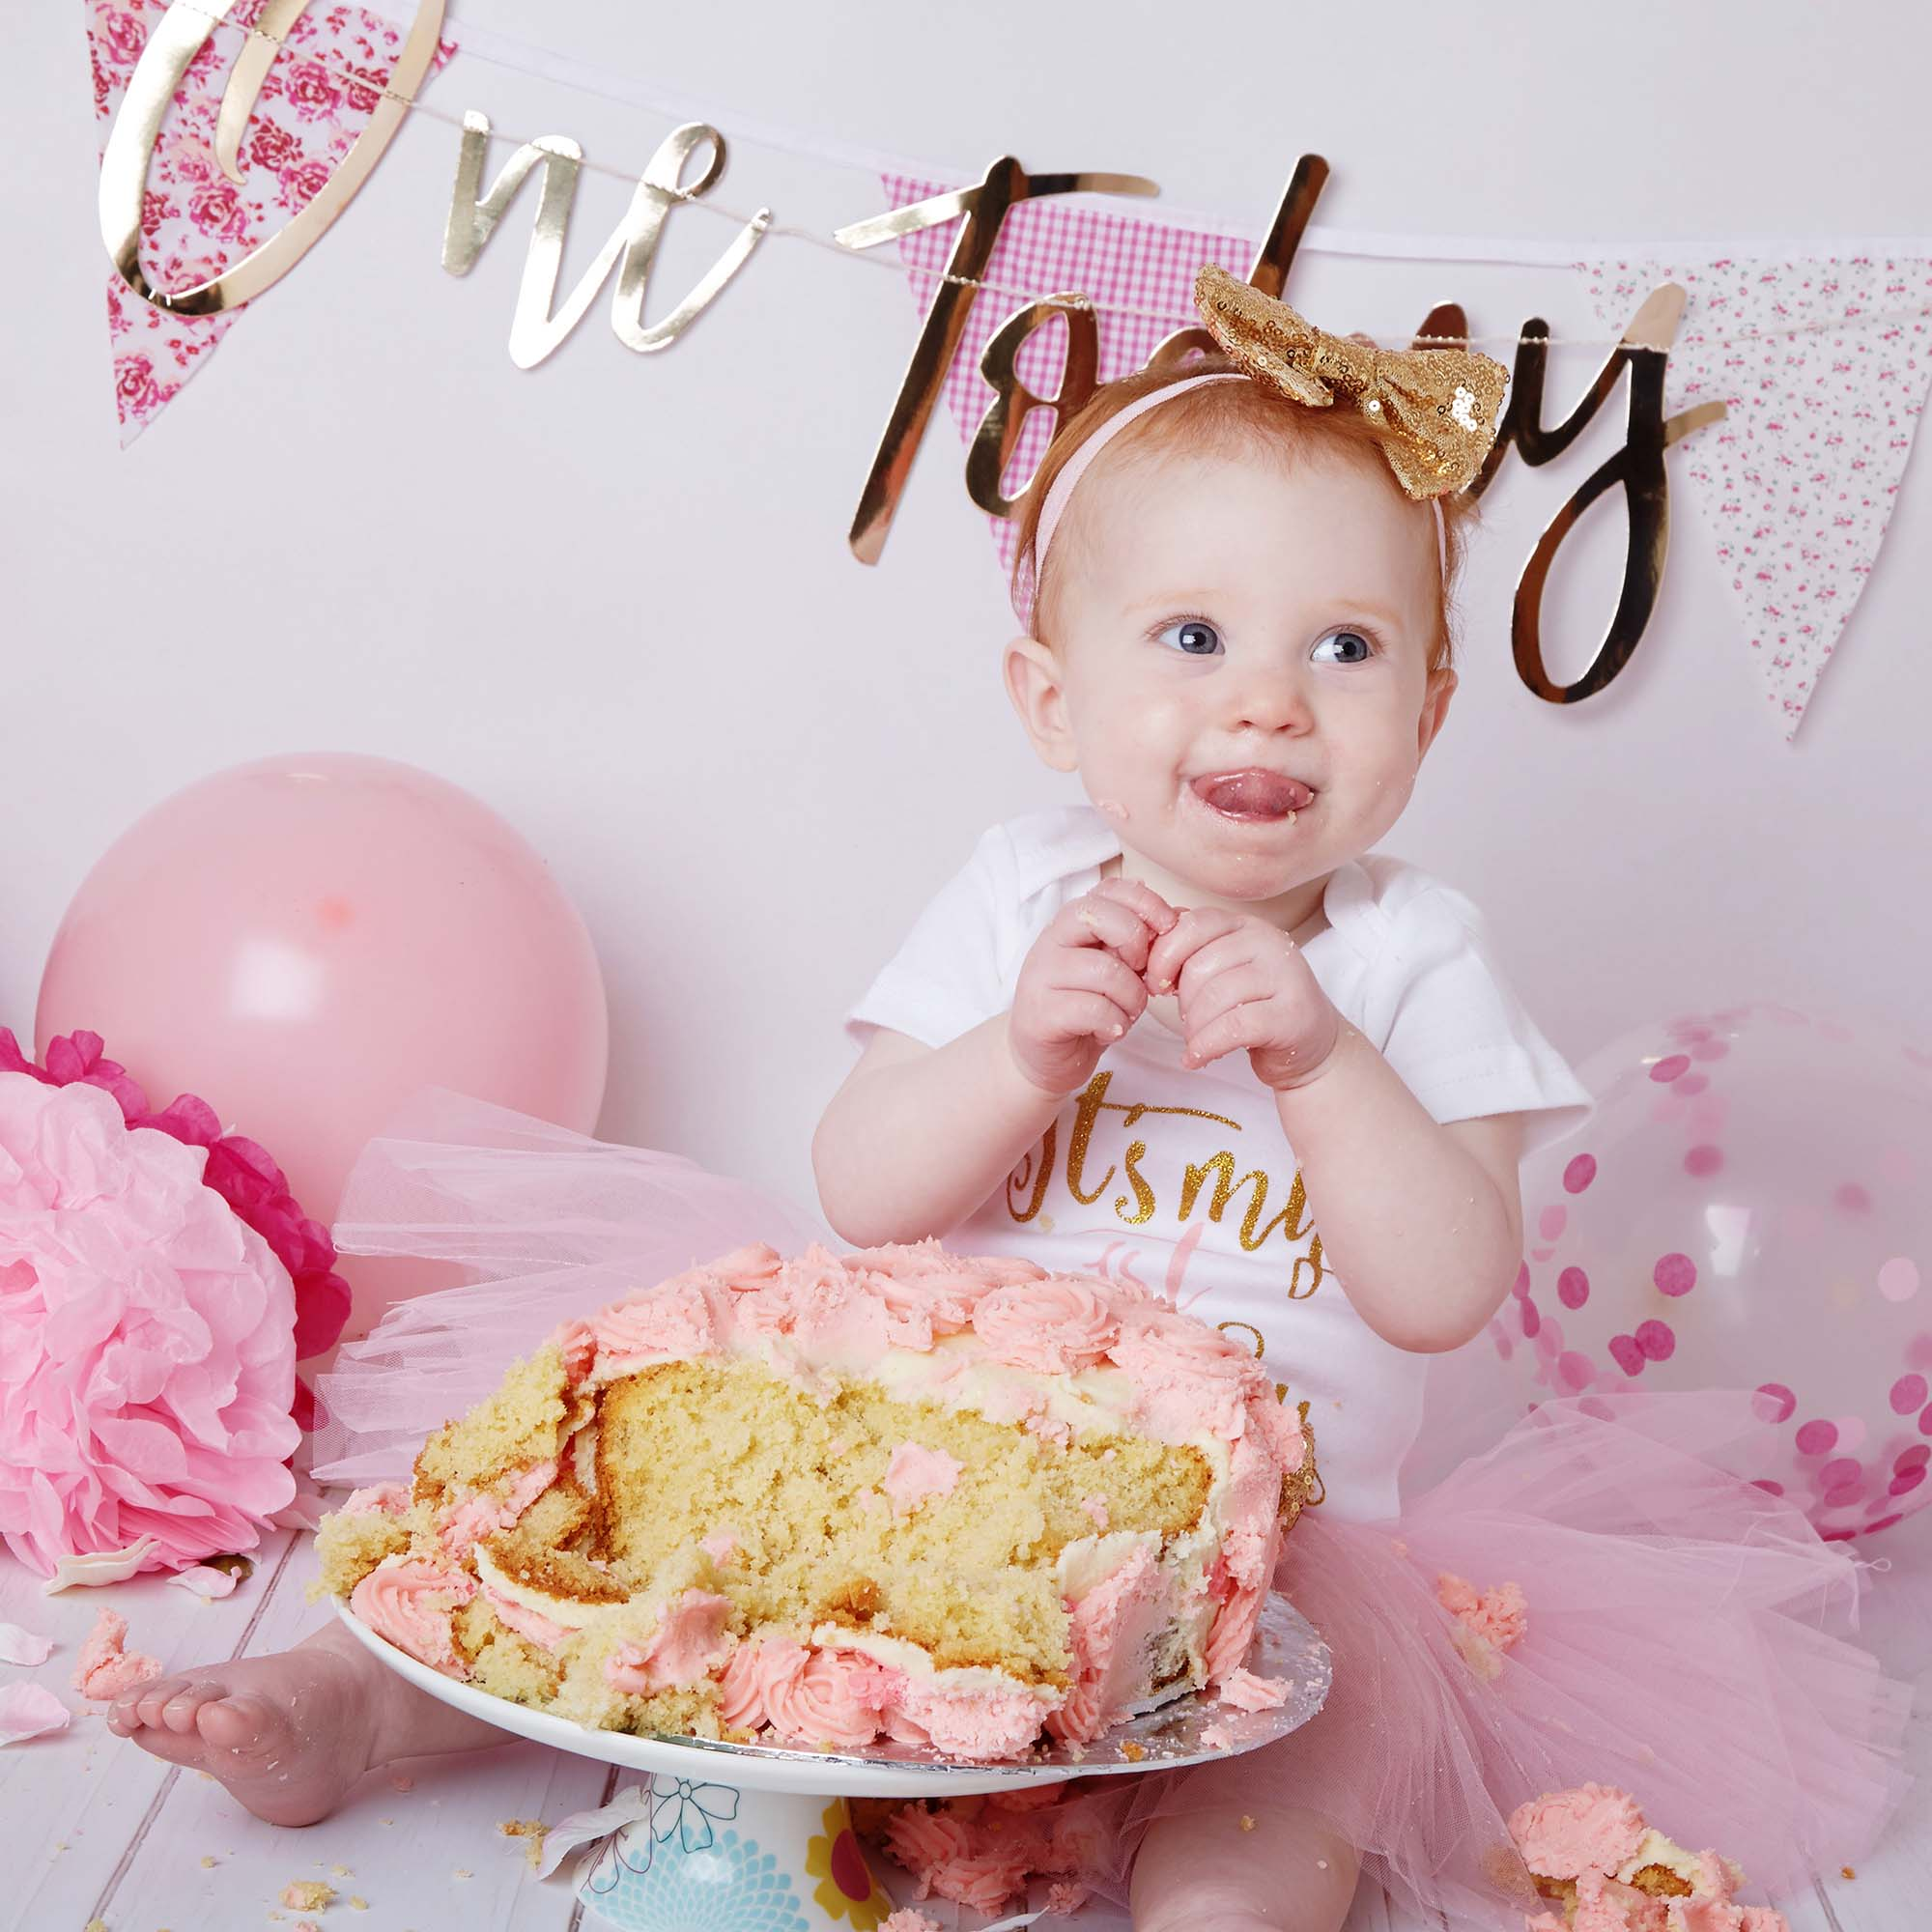 Tremendous Cake Smash Photography Studio Essensi Photography Funny Birthday Cards Online Alyptdamsfinfo